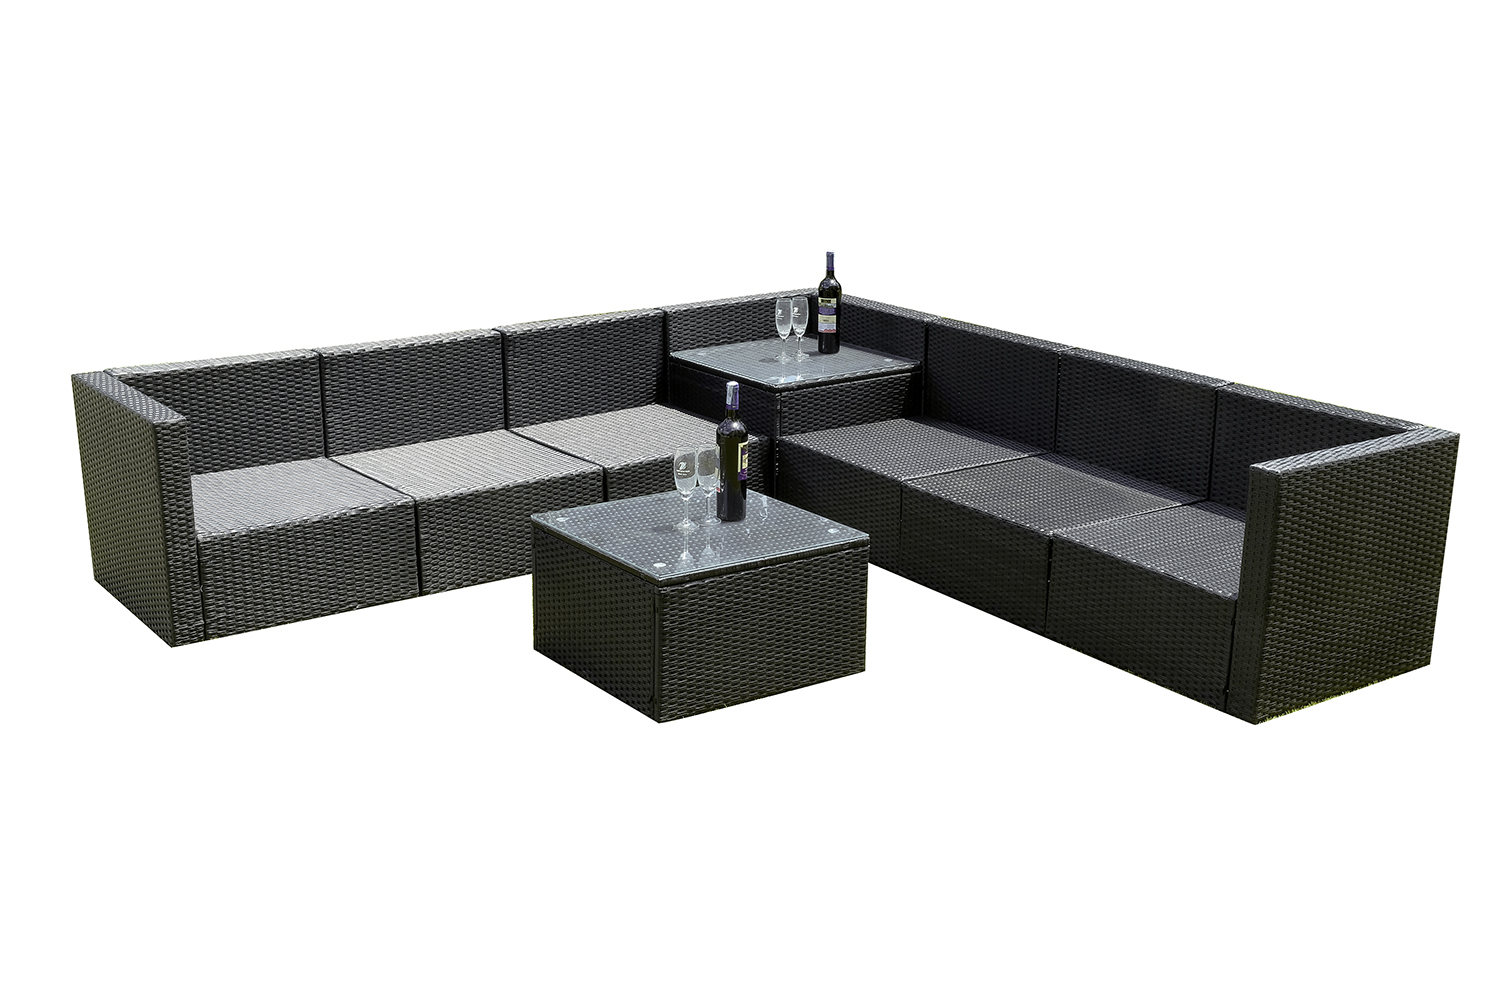 mcombo 20tlg poly rattan gartenm bel sitzgarnitur sitzgruppe sofa ebay. Black Bedroom Furniture Sets. Home Design Ideas